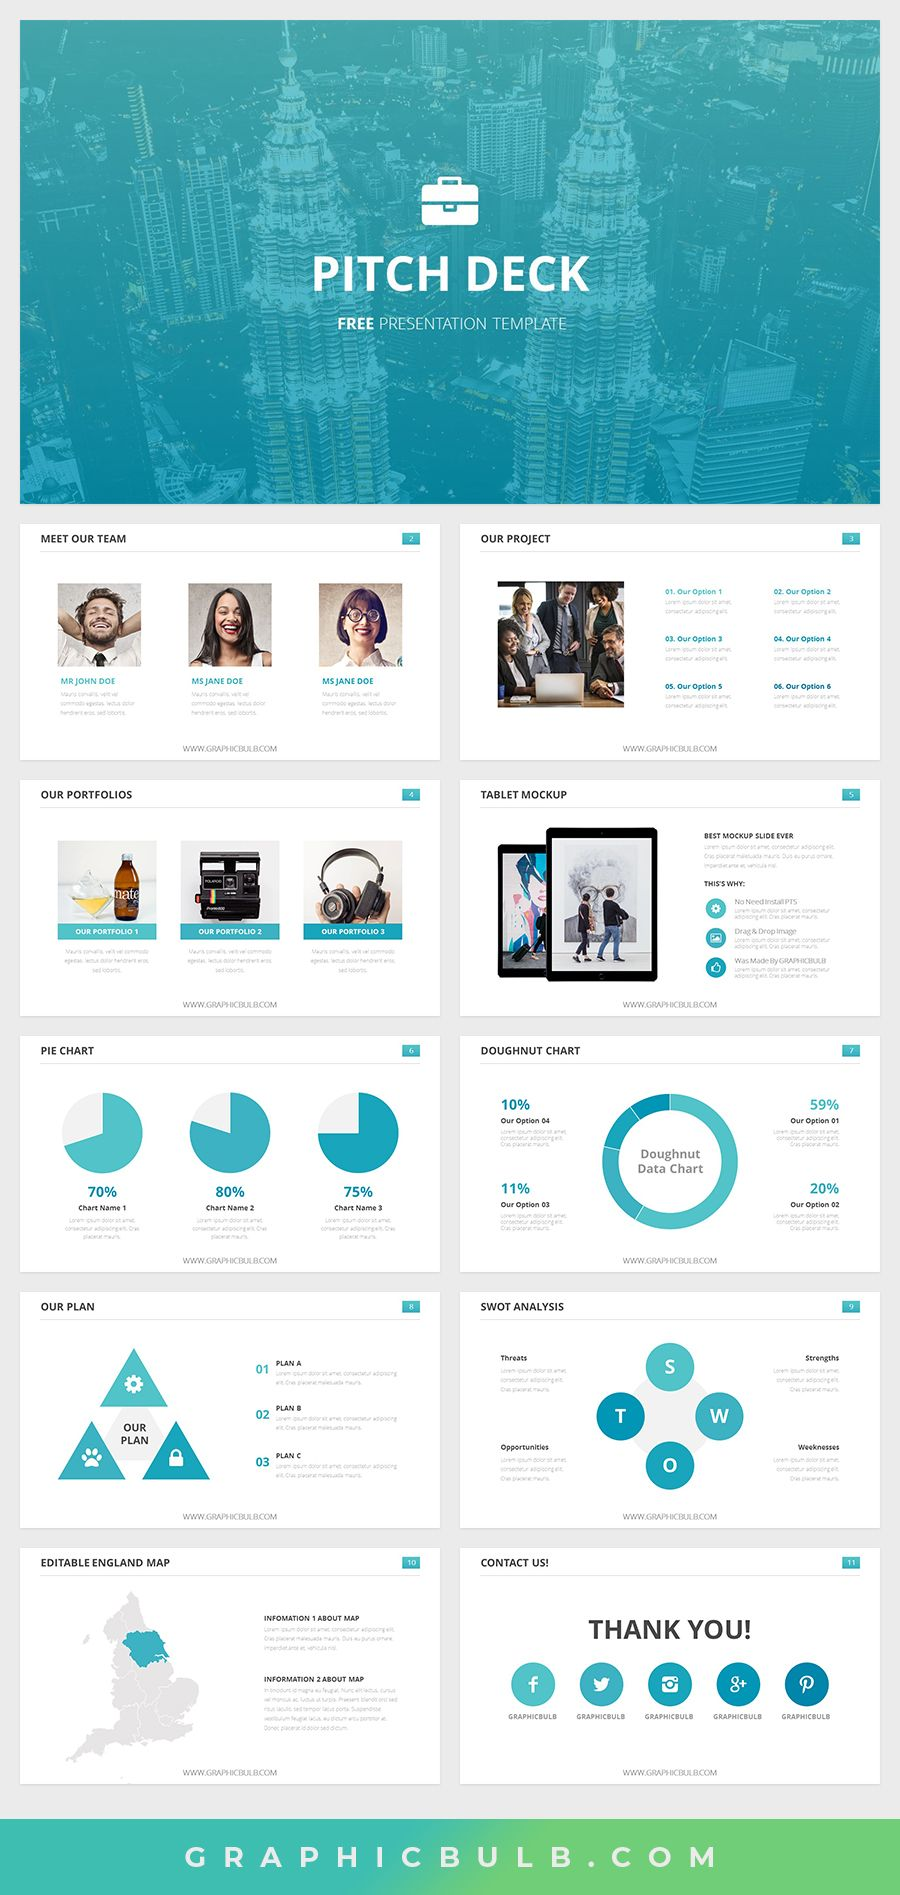 Best Free Pitch Deck Powerpoint Templates In 2020 Marketing Presentation Pitch Presentation Powerpoint Design Templates